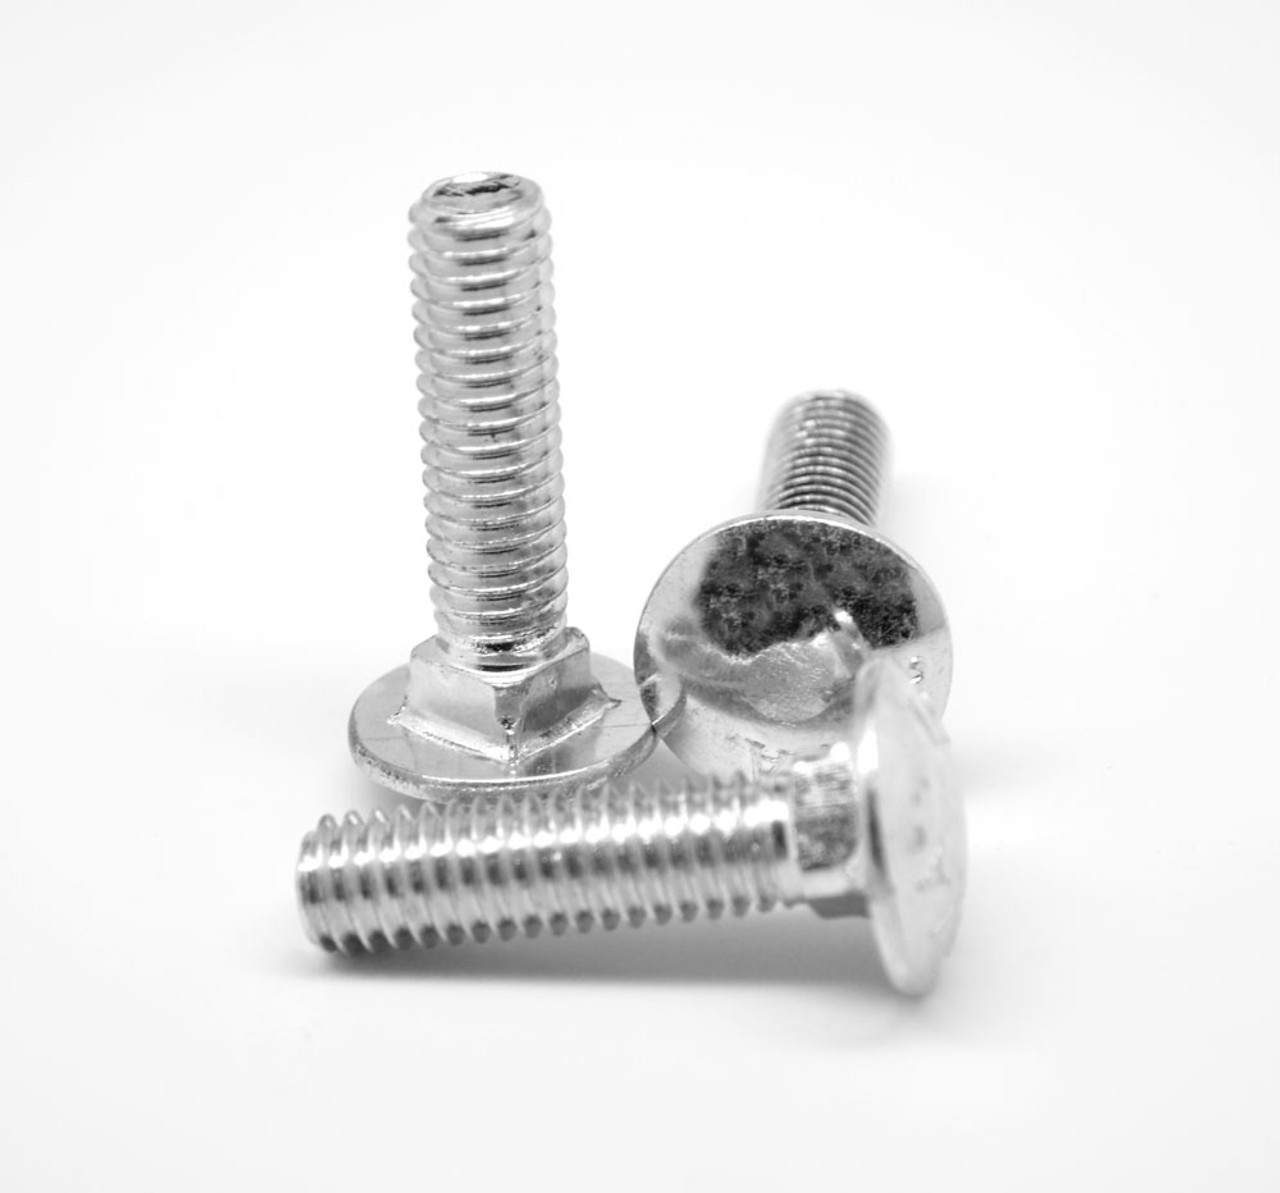 """#10-24 x 3/4"""" (FT) Coarse Thread A307 Grade A Carriage Bolt Low Carbon Steel Zinc Plated"""